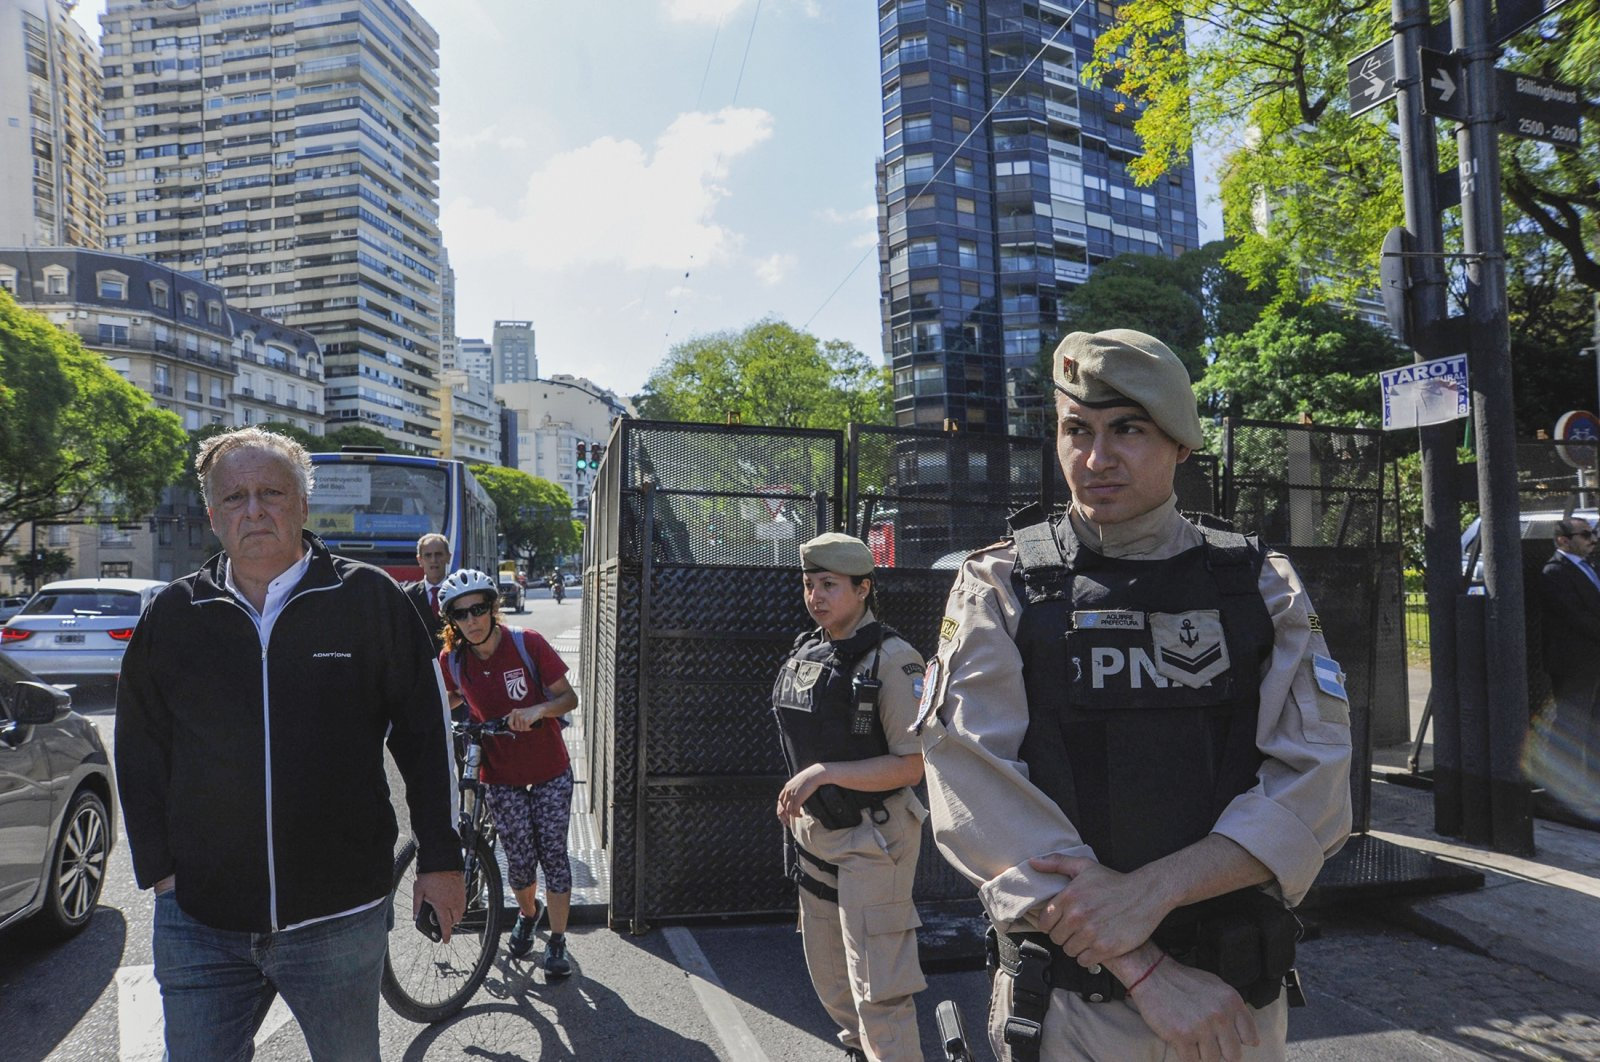 Border police reinforce security outside Saudi Arabia's embassy in Buenos Aires, Argentina, Wednesday, Nov. 28, 2018. (Getty Images)